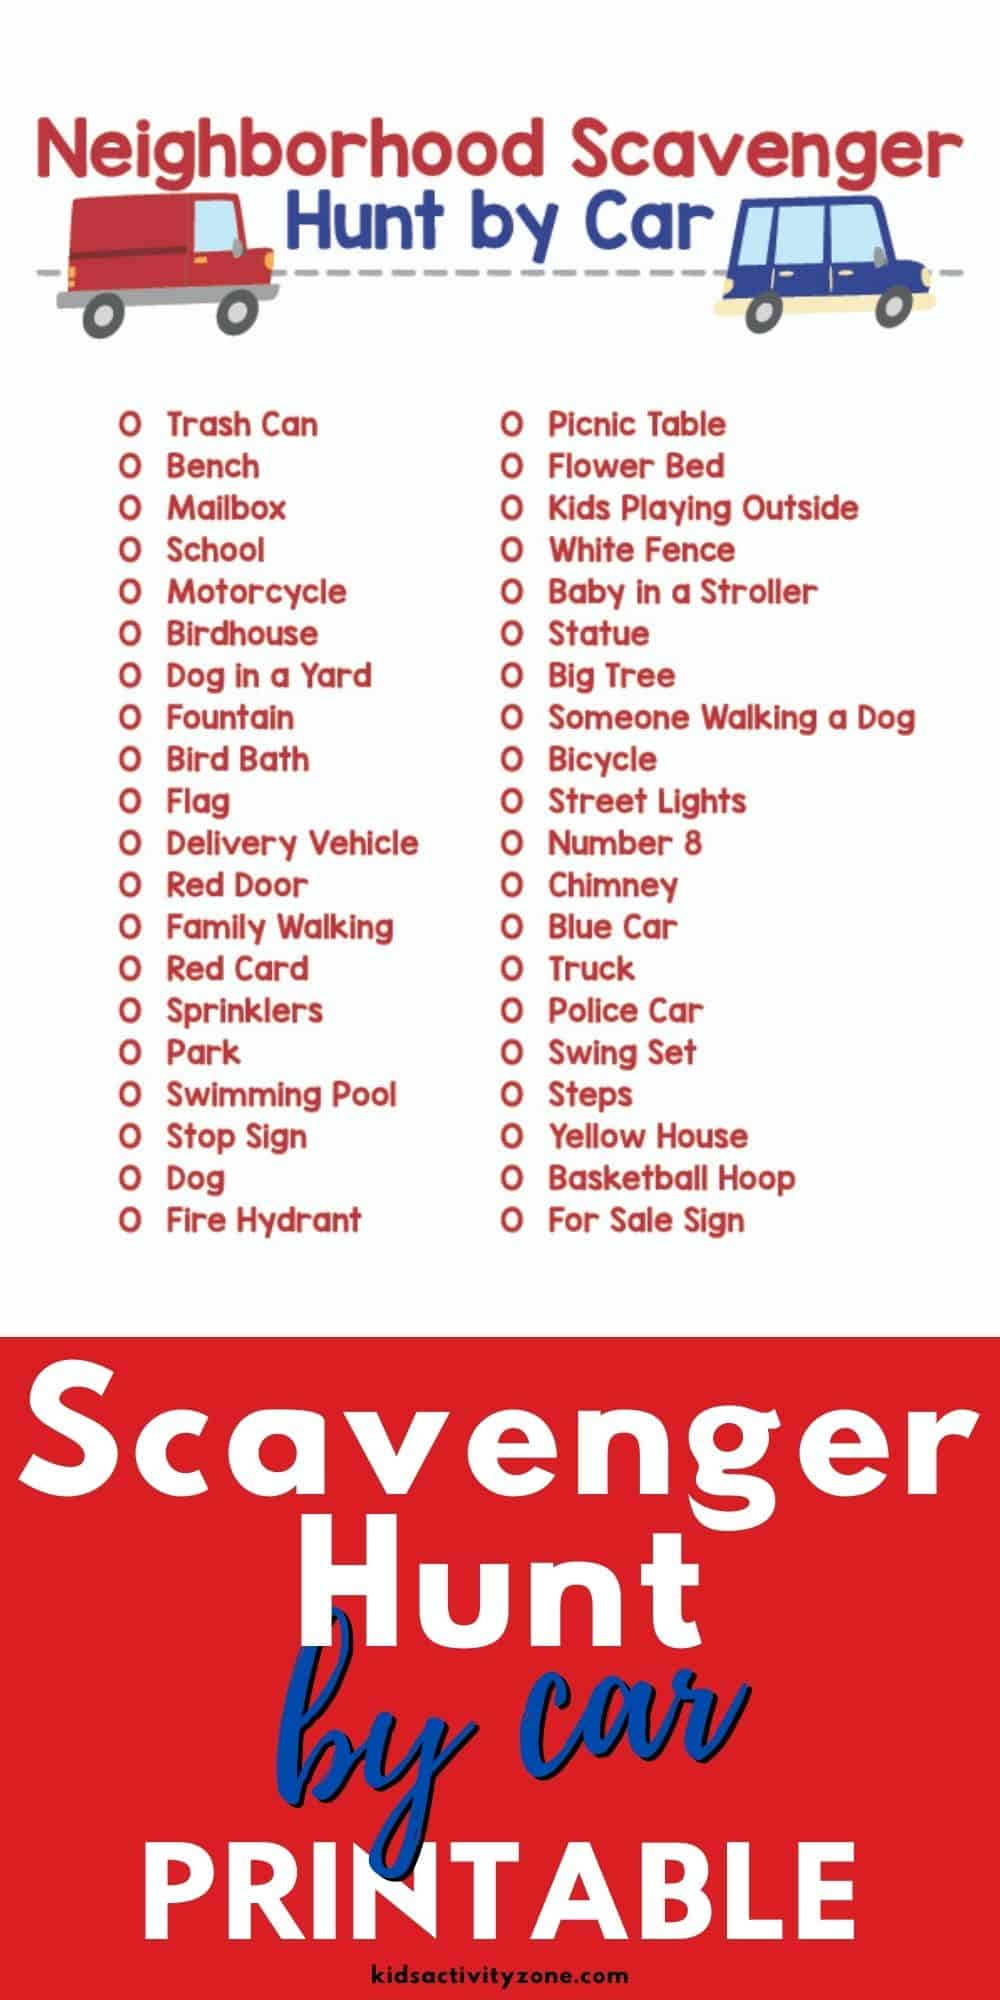 Stuck inside and going crazy? Hop in the car and do this fun Scavenger Hunt by Car as a family! It's a free, fun activity that you can do with your family. Great if your kids are going stir crazy!